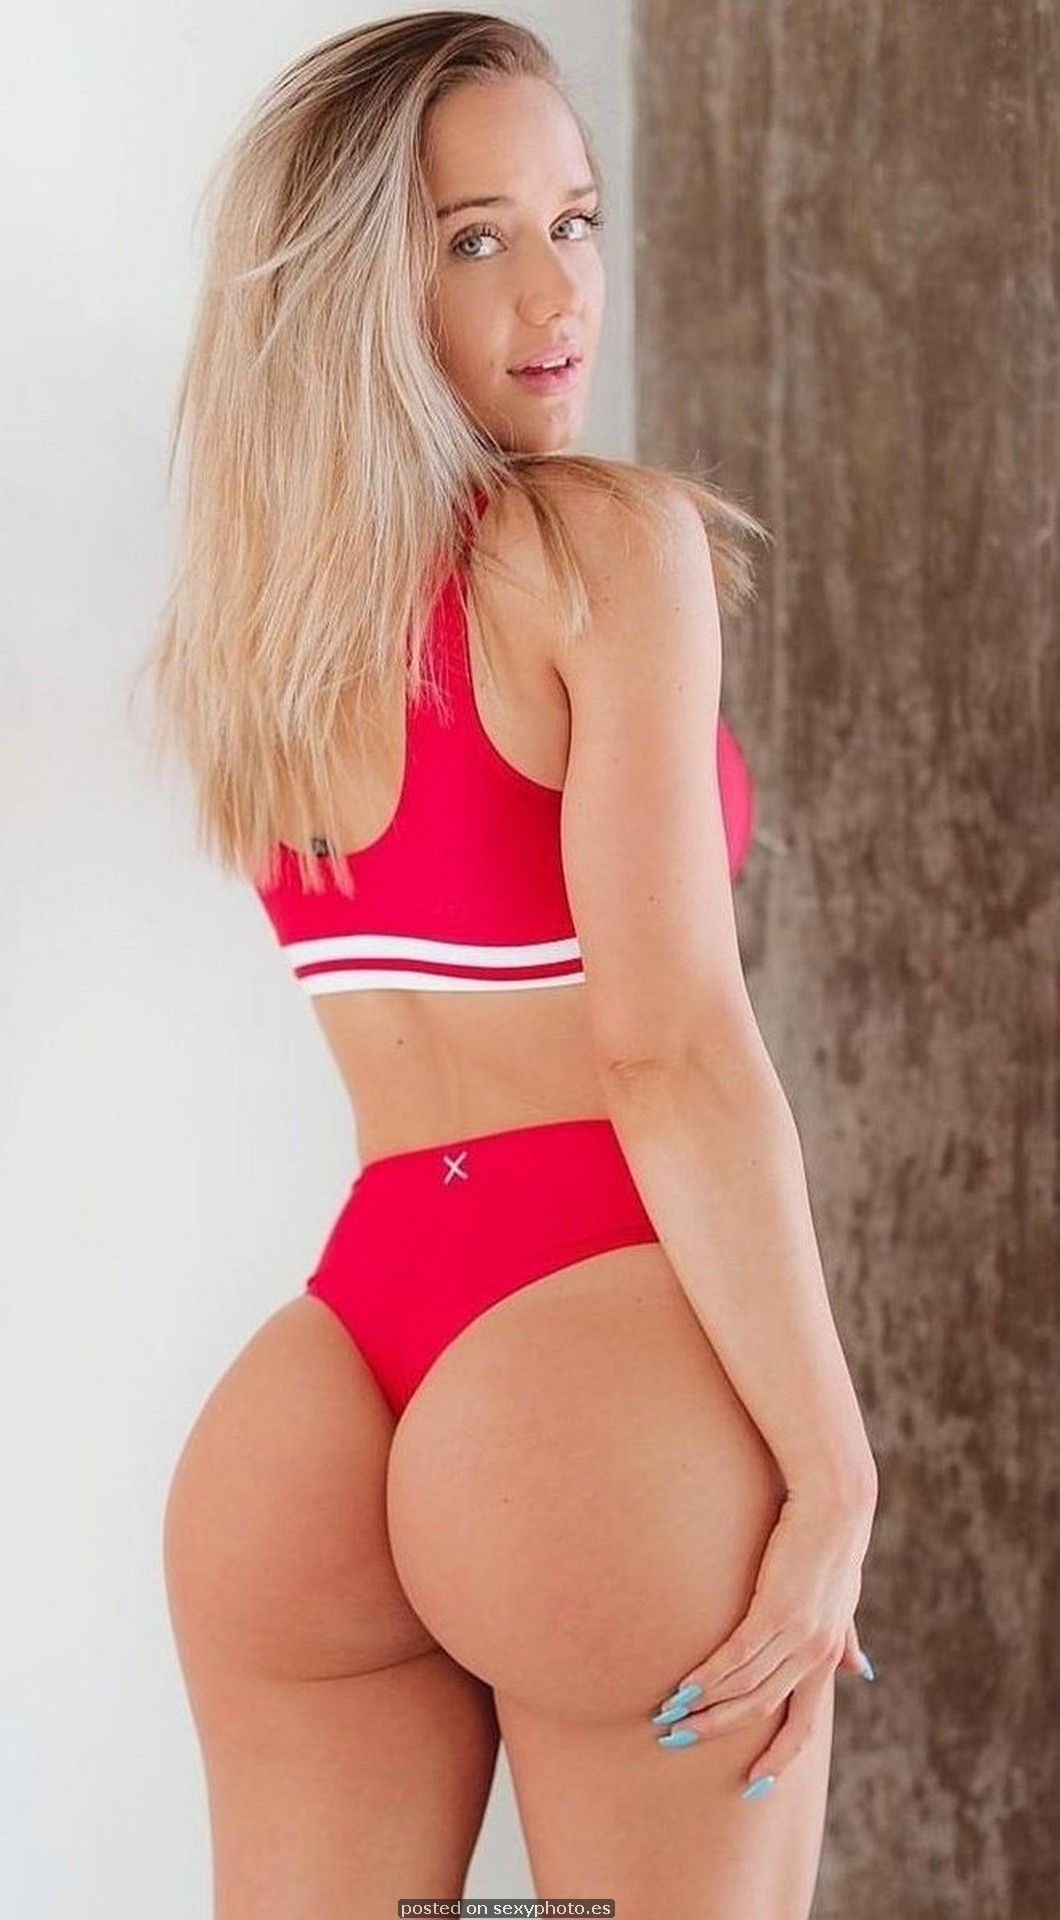 Red is hot and sexy, lingerie ass boobs photo